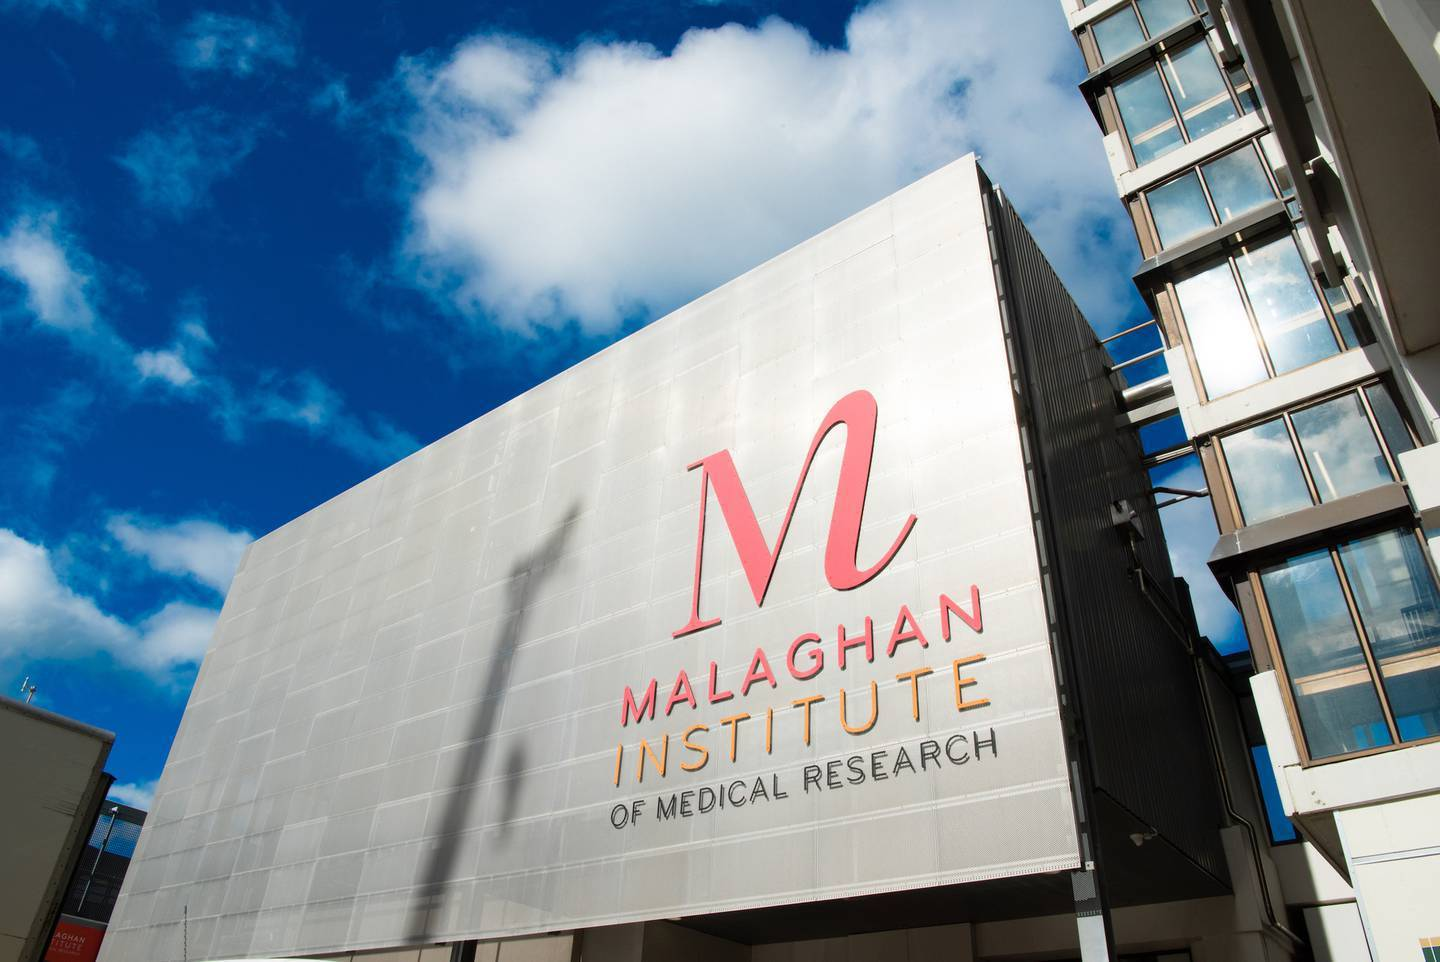 The partnership was launched today at the Malaghan Institute of Medical Research in Wellington. Photo / Supplied